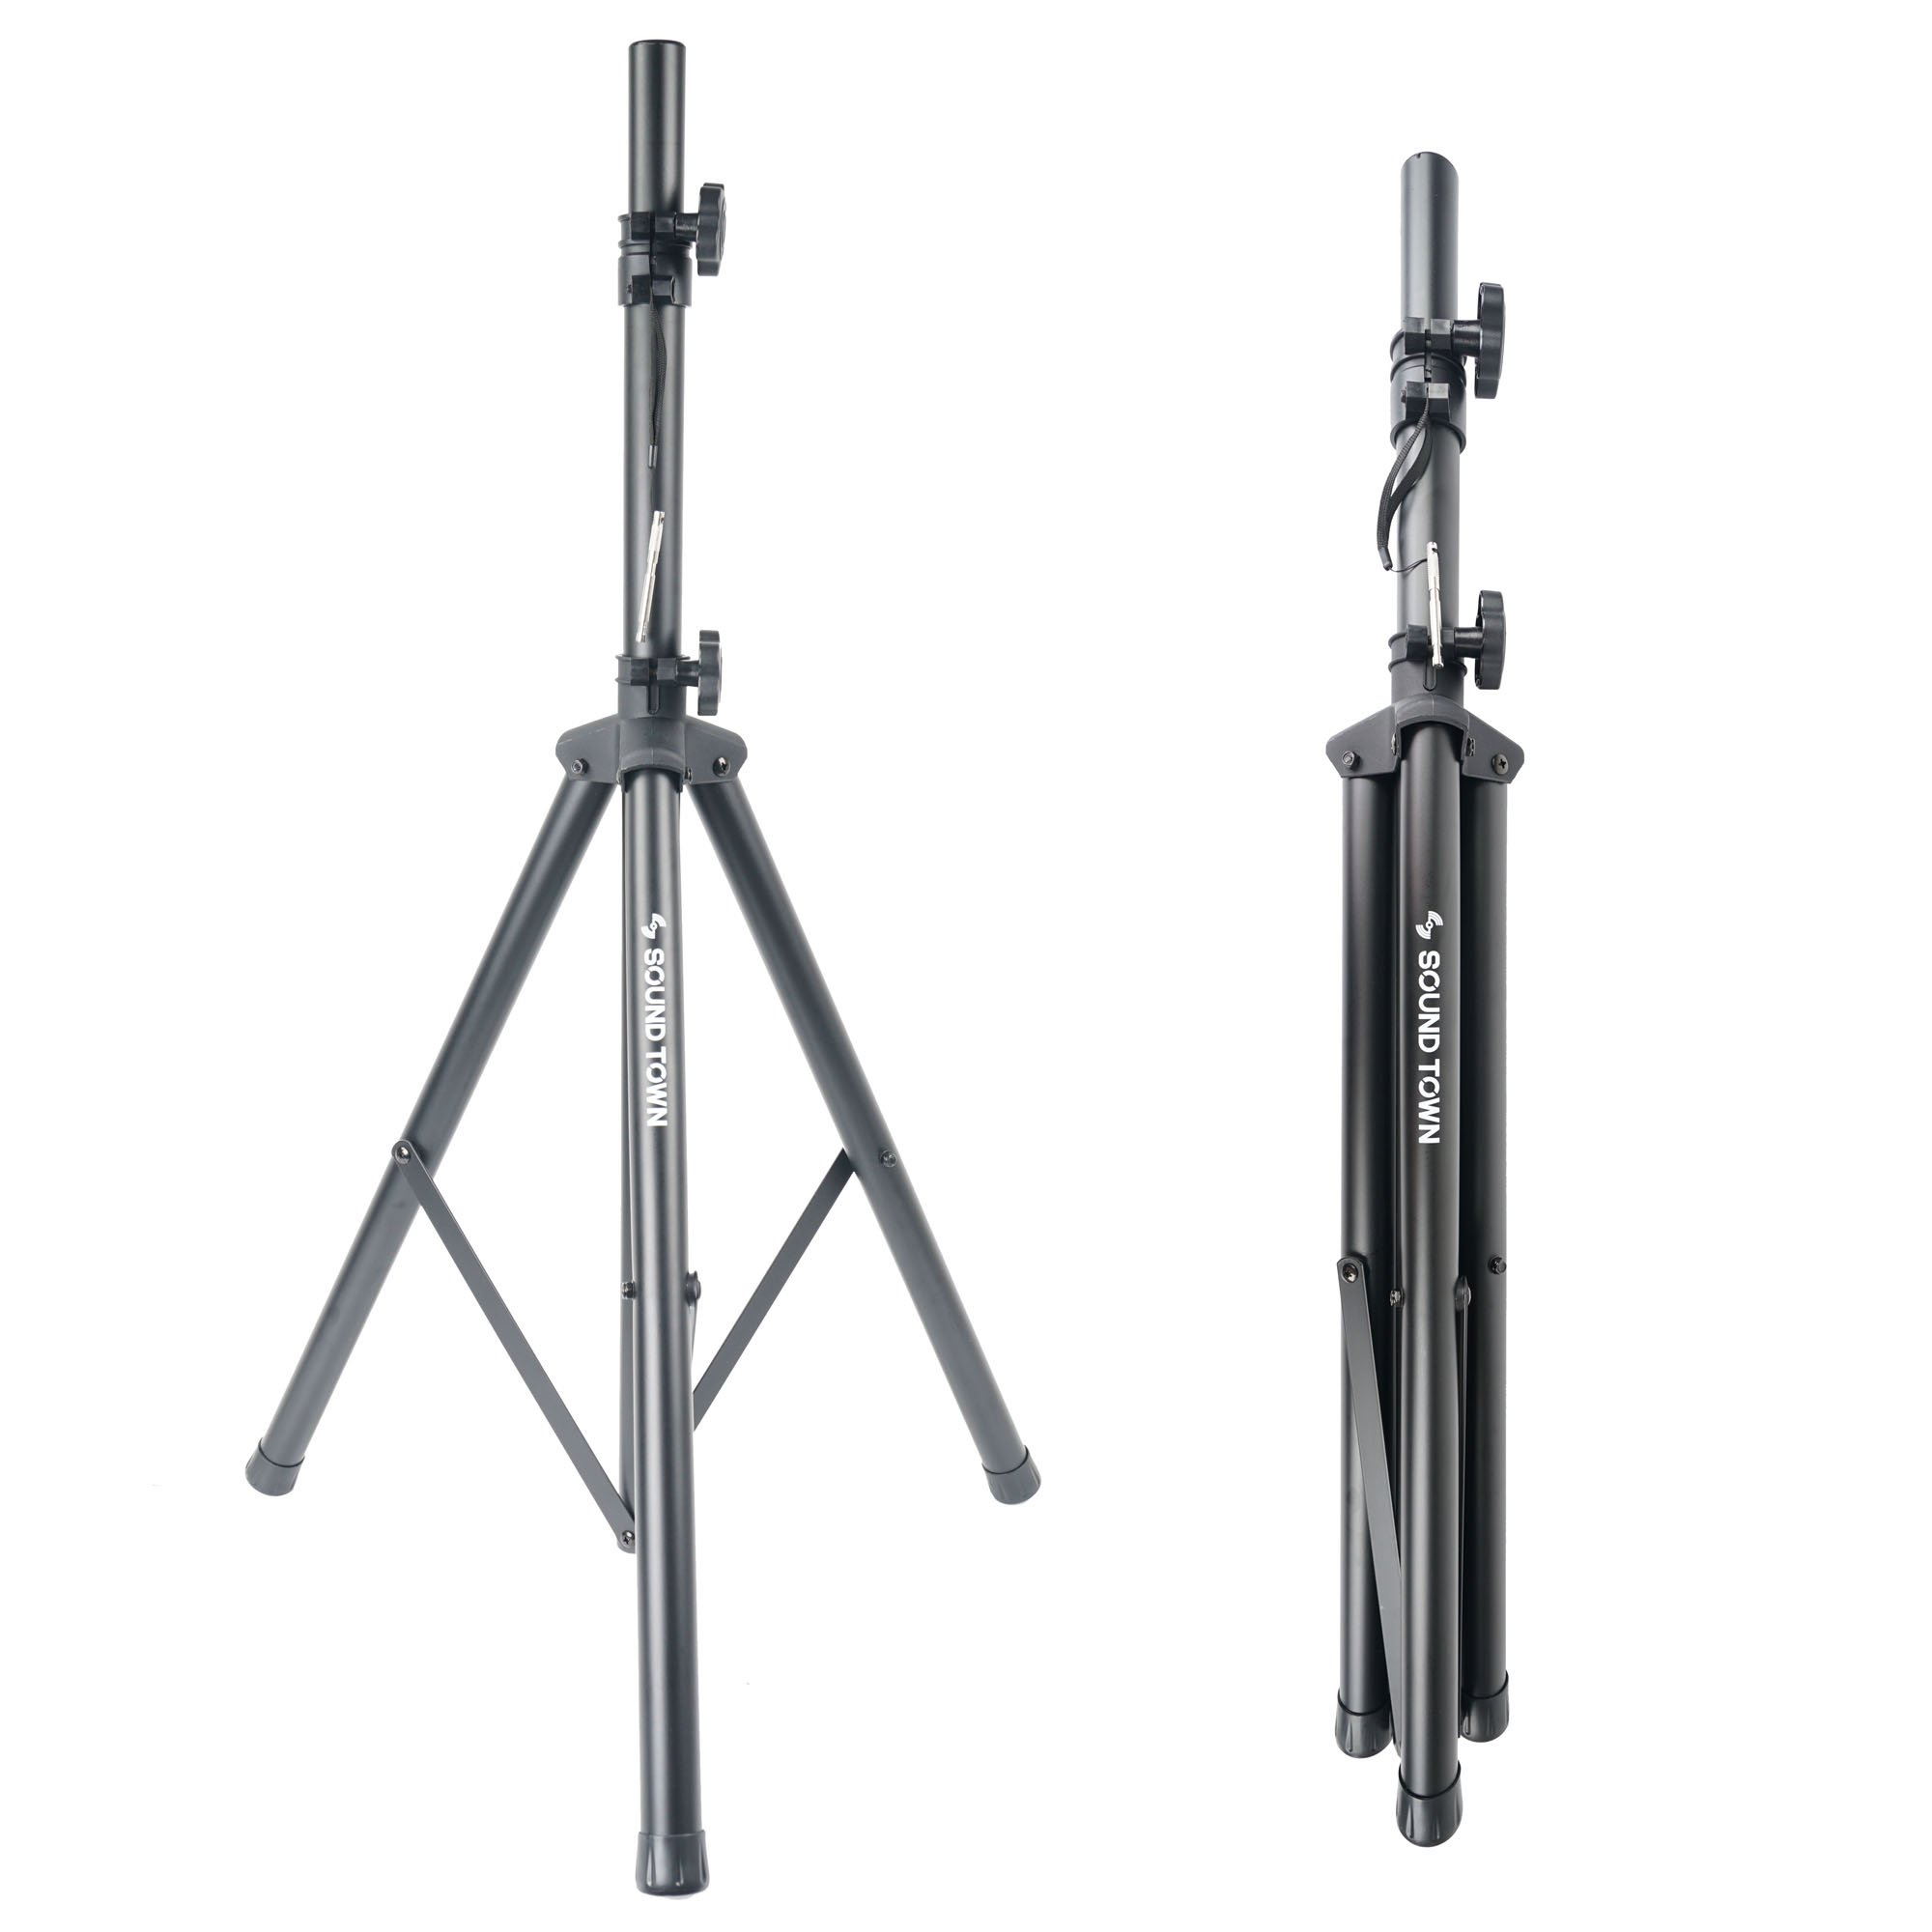 Sound Town Universal Tripod Speaker Stand with Adjustable Height, 35mm Compatible Insert, Locking Knob and Shaft Pin (STSD-71B), One stand